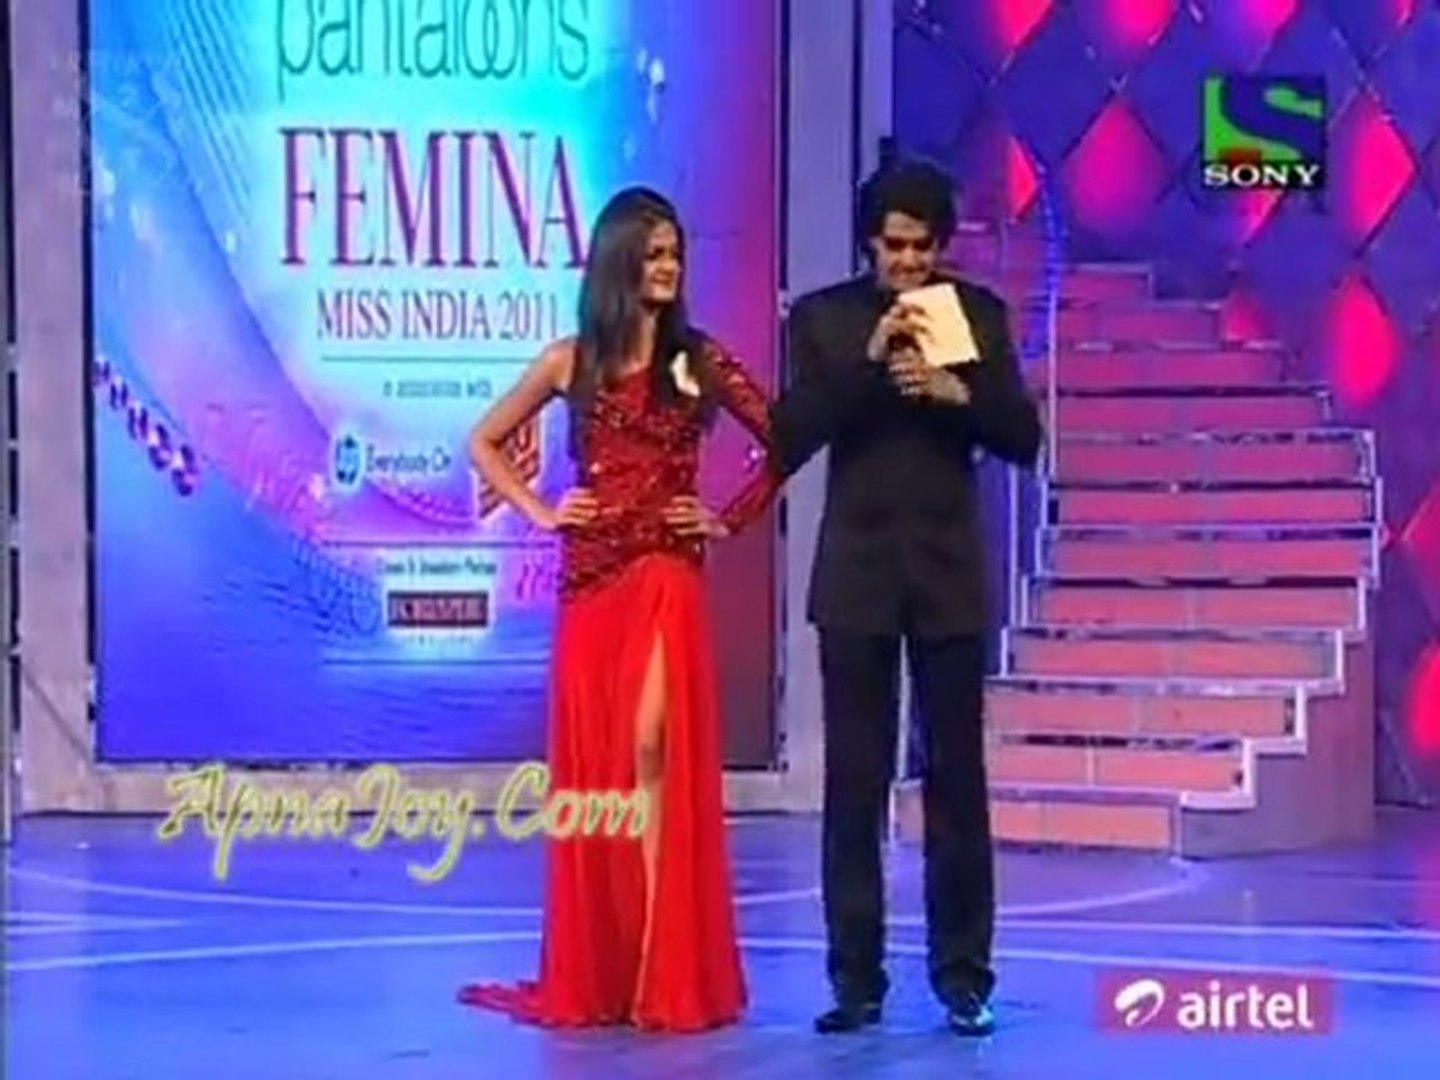 Pantaloons Femina Miss India 2011 - 24th April 2011 Part6